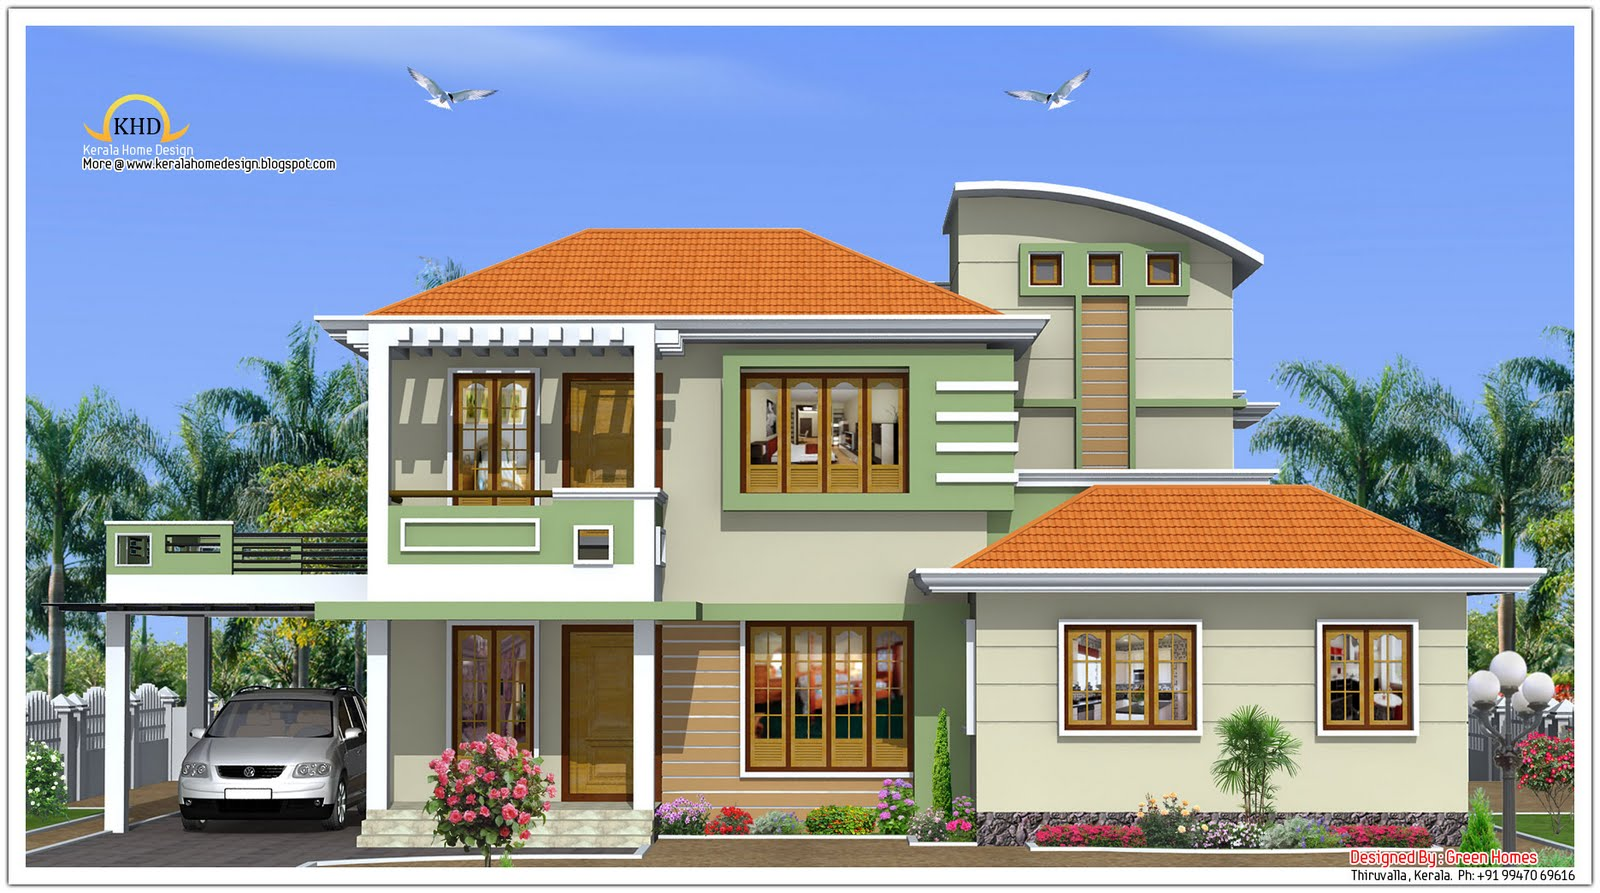 Ground Floor Elevation With Portico : House elevation sq ft kerala home design and